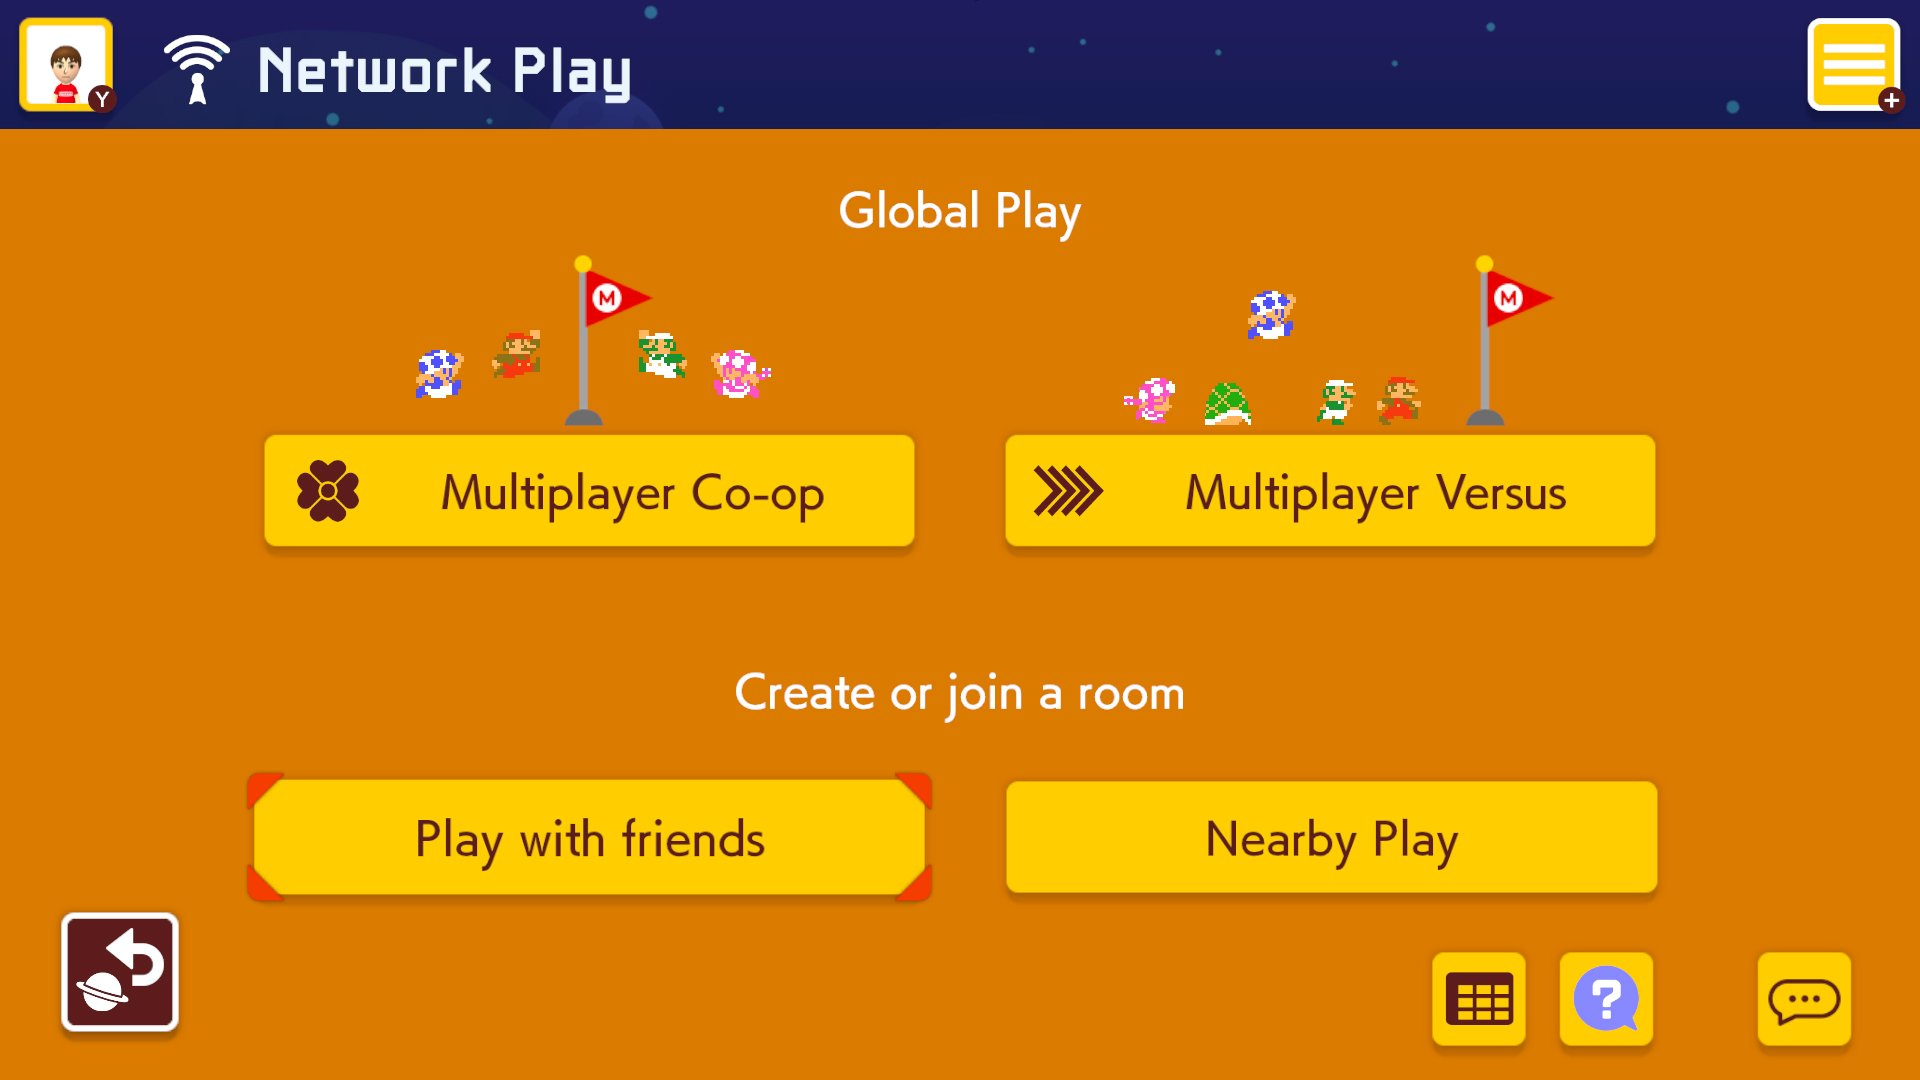 Super Mario Maker 2's first big update adds online play with friends